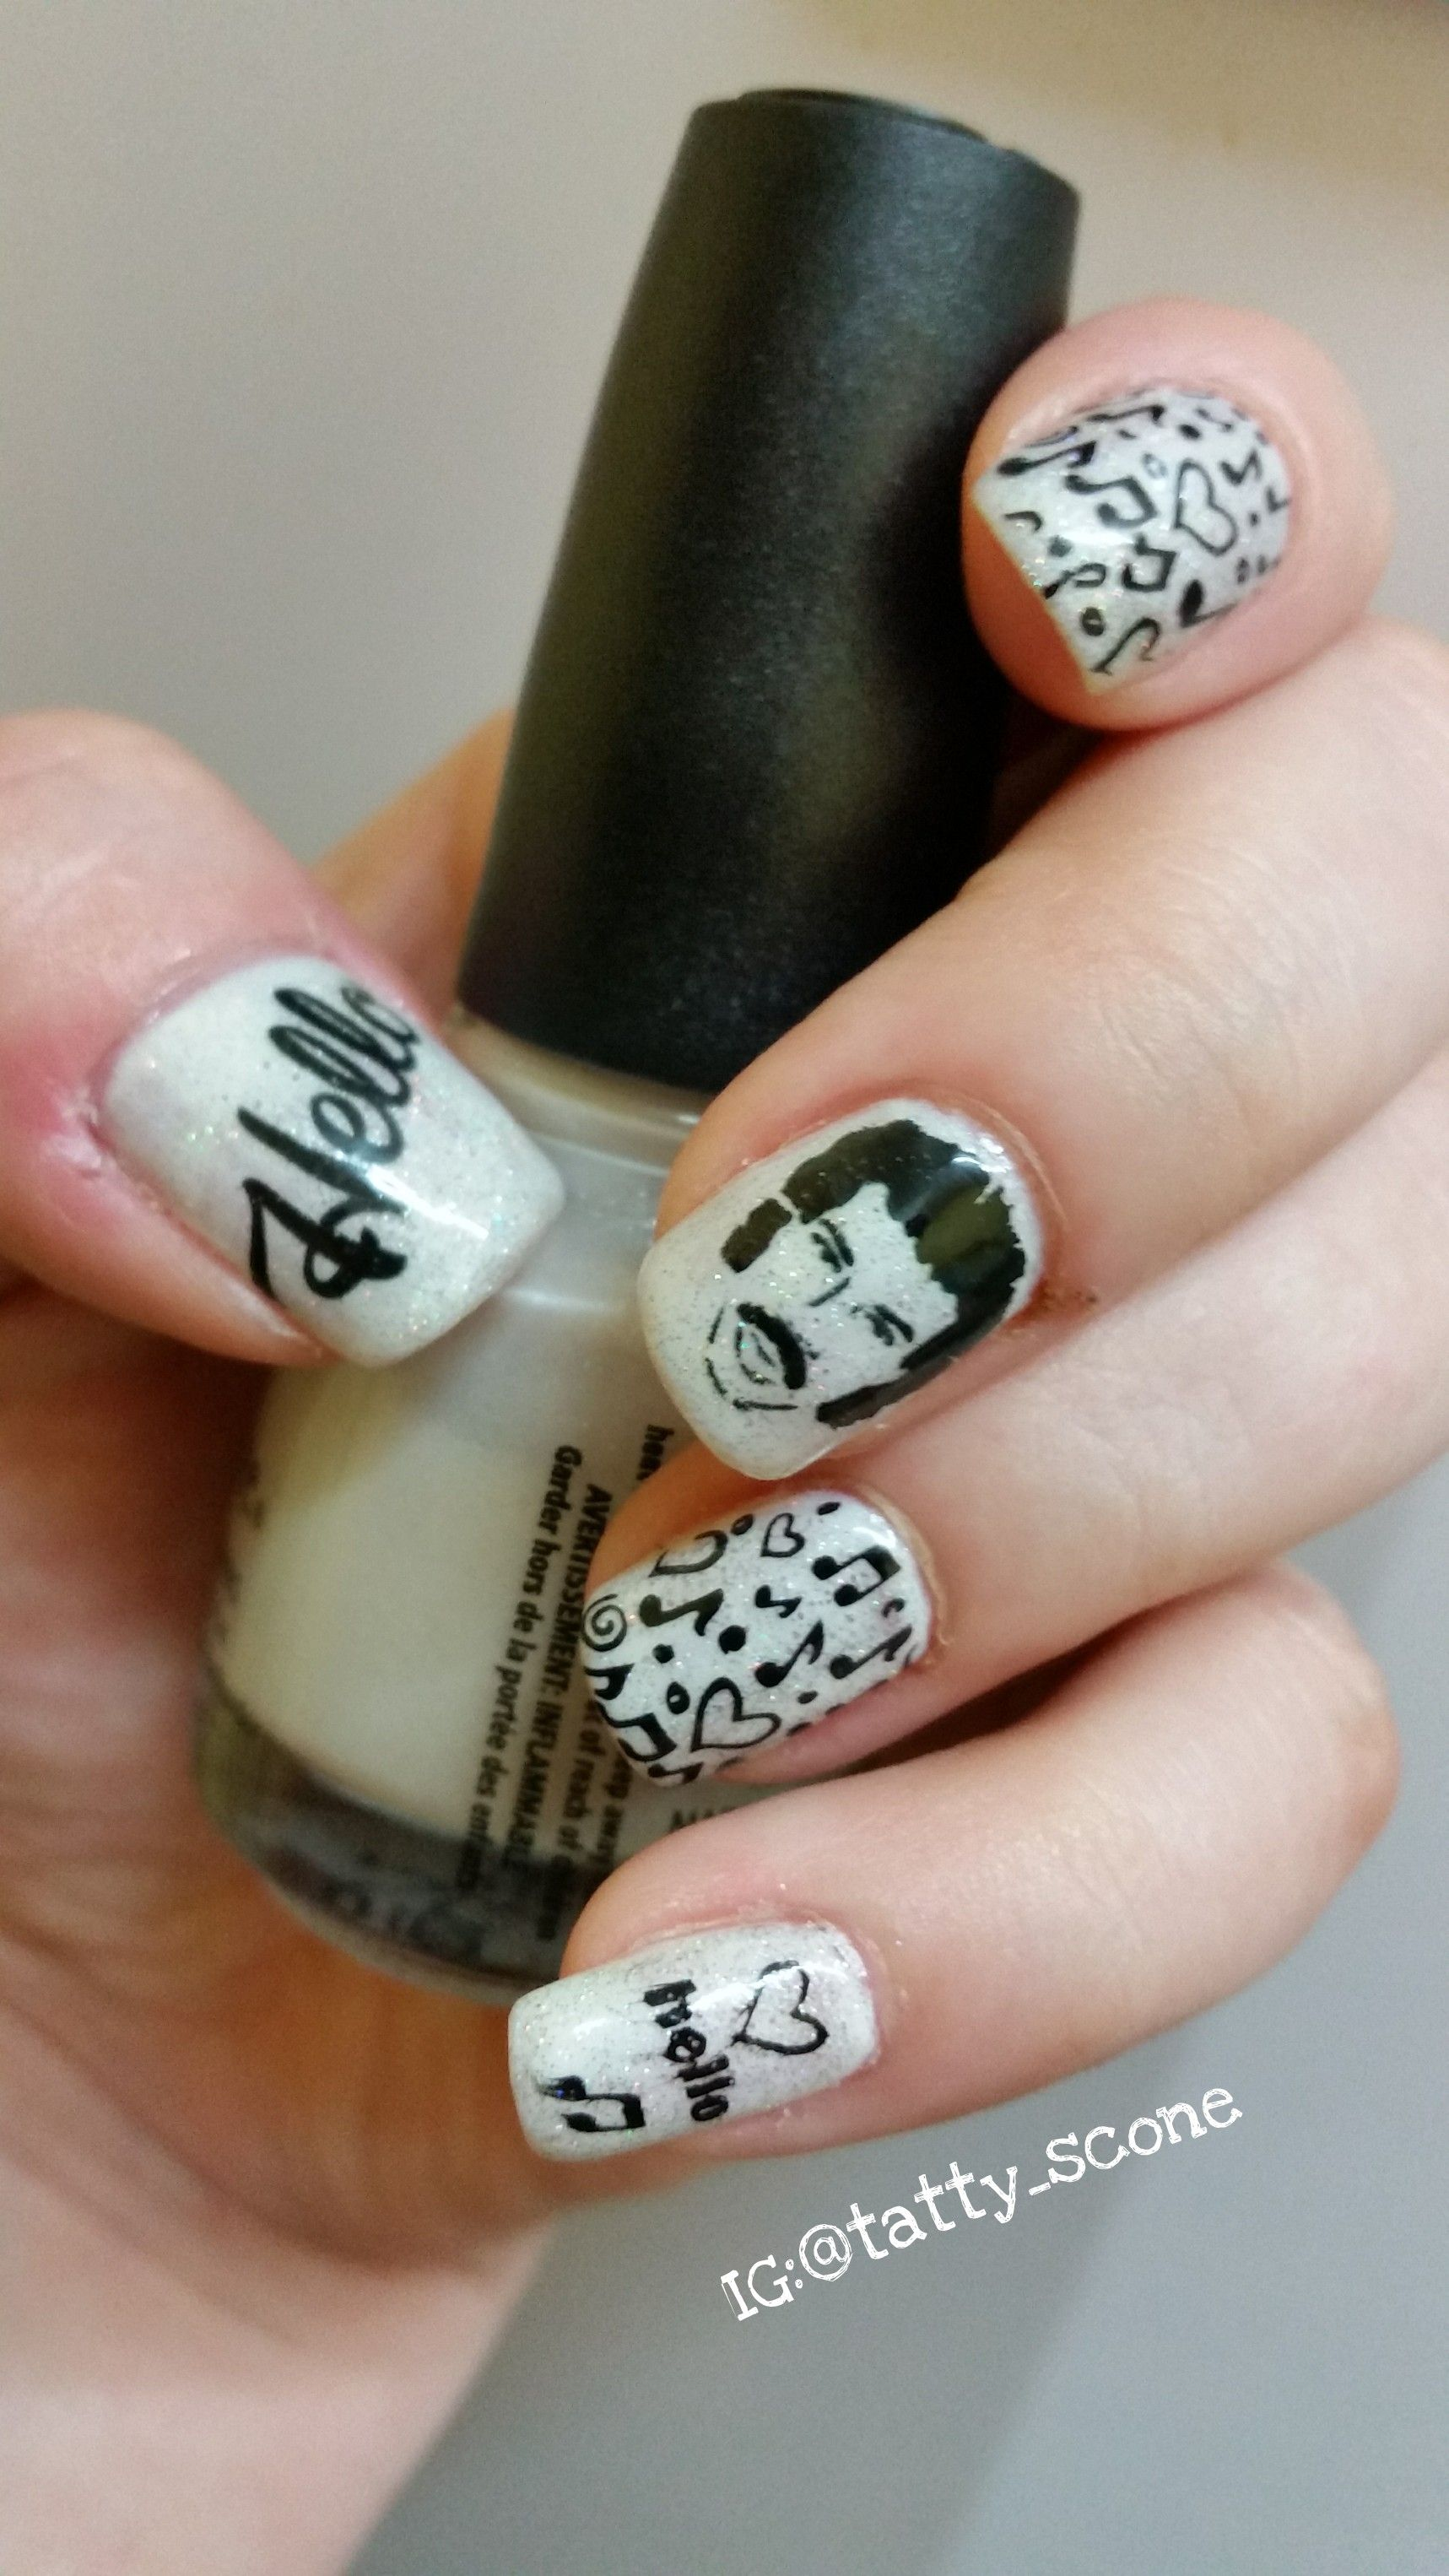 Lionel Richie tribute nail art using China Glaze polishes in Dandy ...